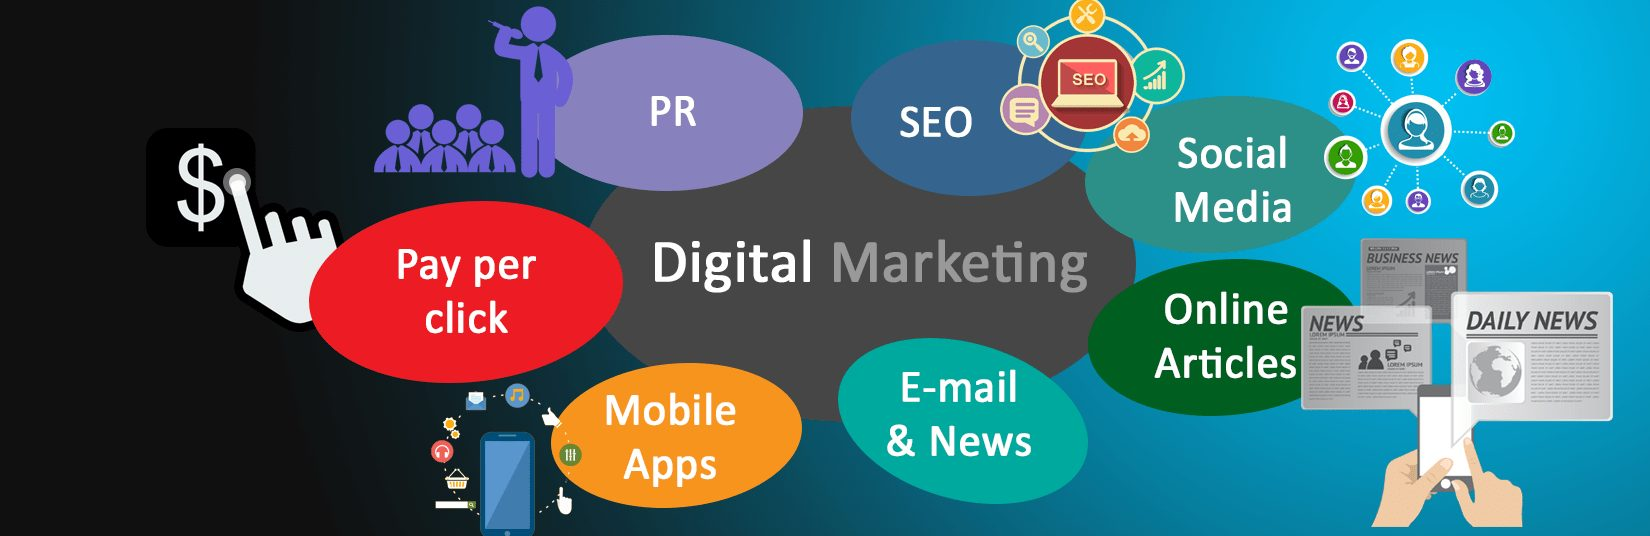 digital marketing - krea8iv solutions